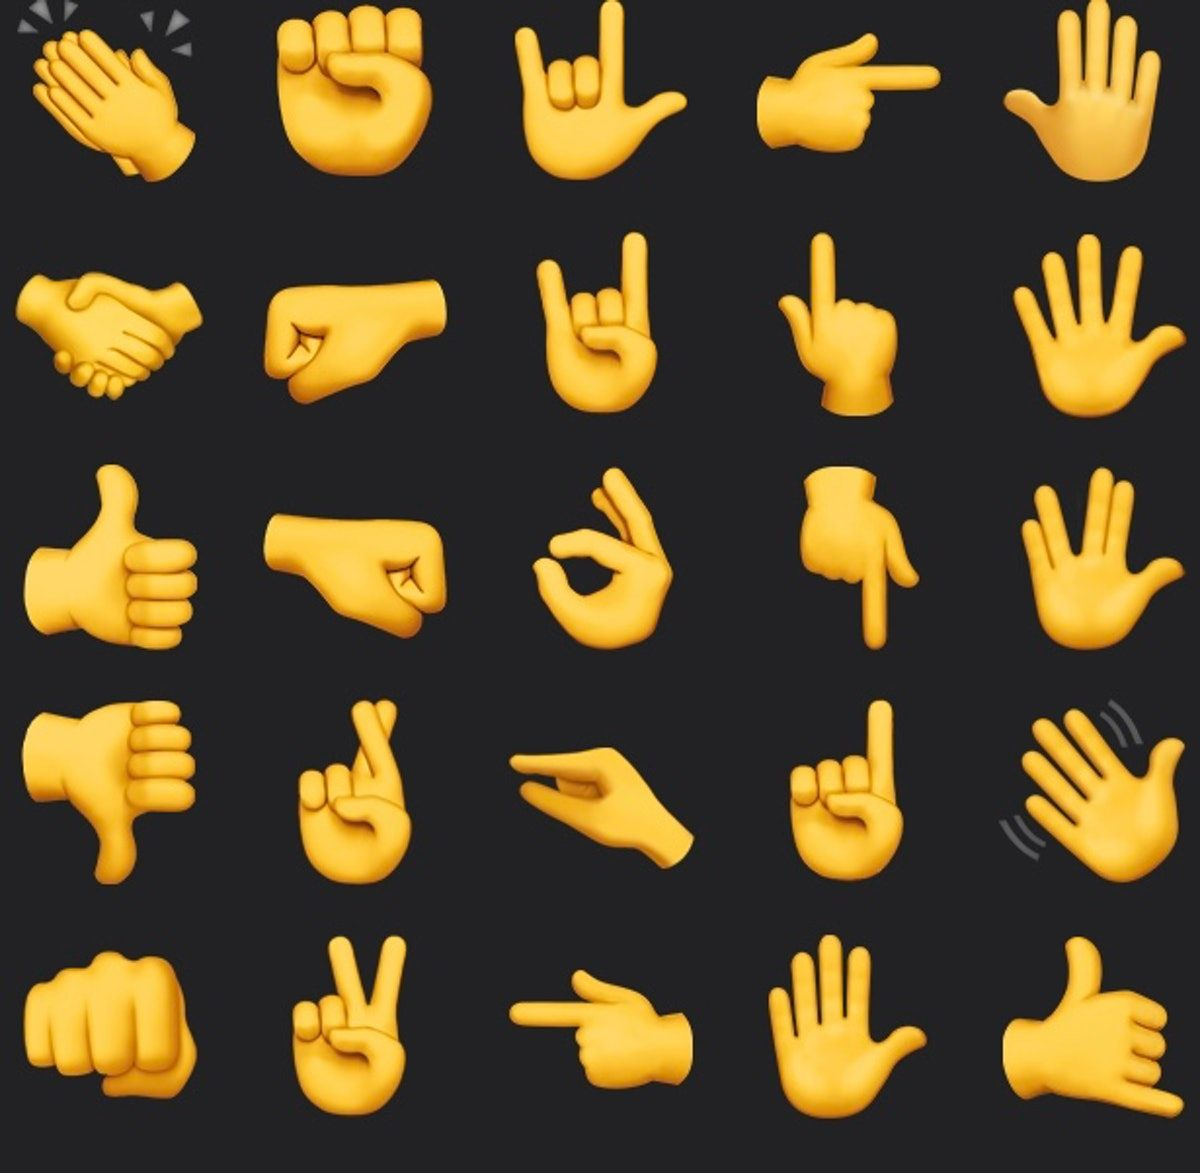 What Do All The Hand Emojis Mean Or How To Know When To Use Prayer Hands Vs Applause In 2020 Hand Emoji Hand Emoji Meanings Prayer Hands